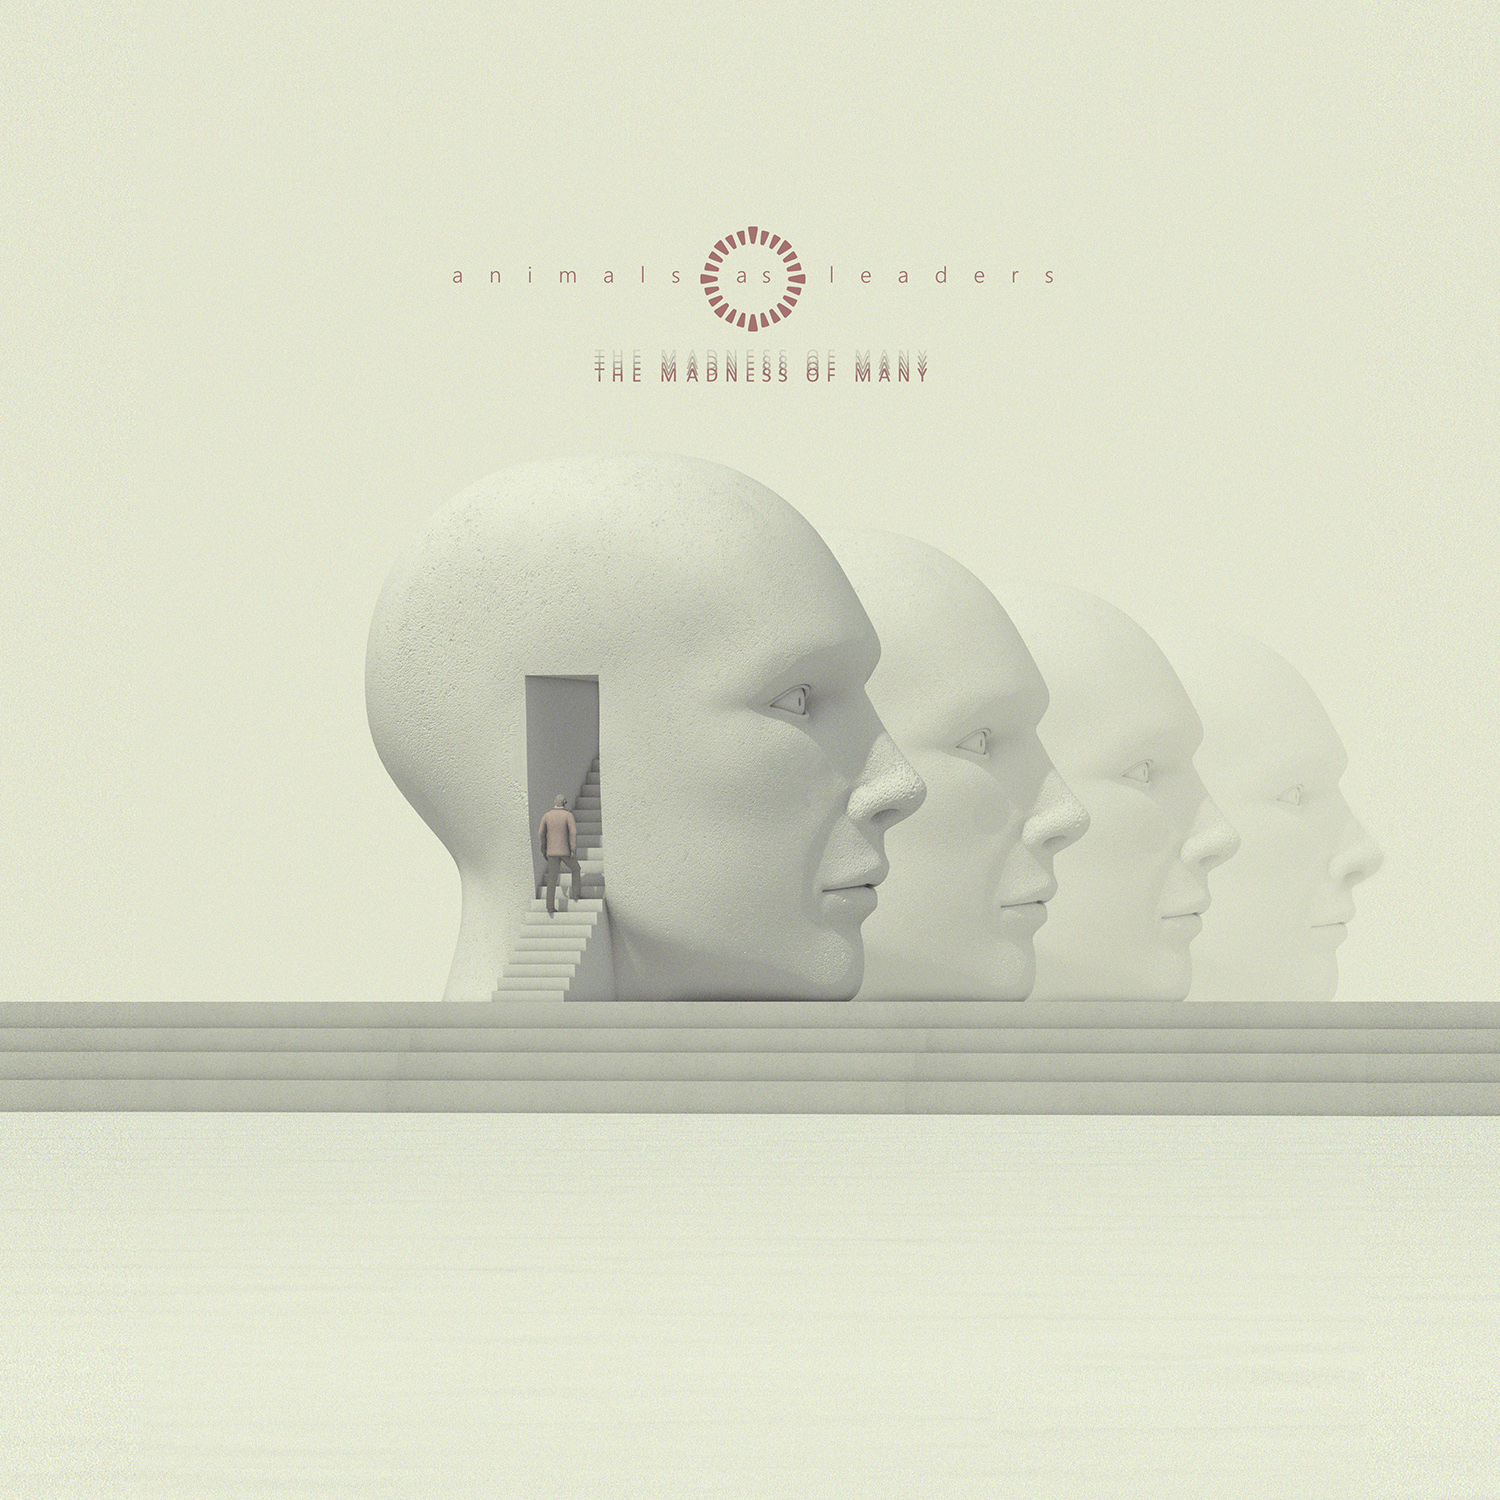 Album Spotlight: Animals as Leaders – The Madness of Many